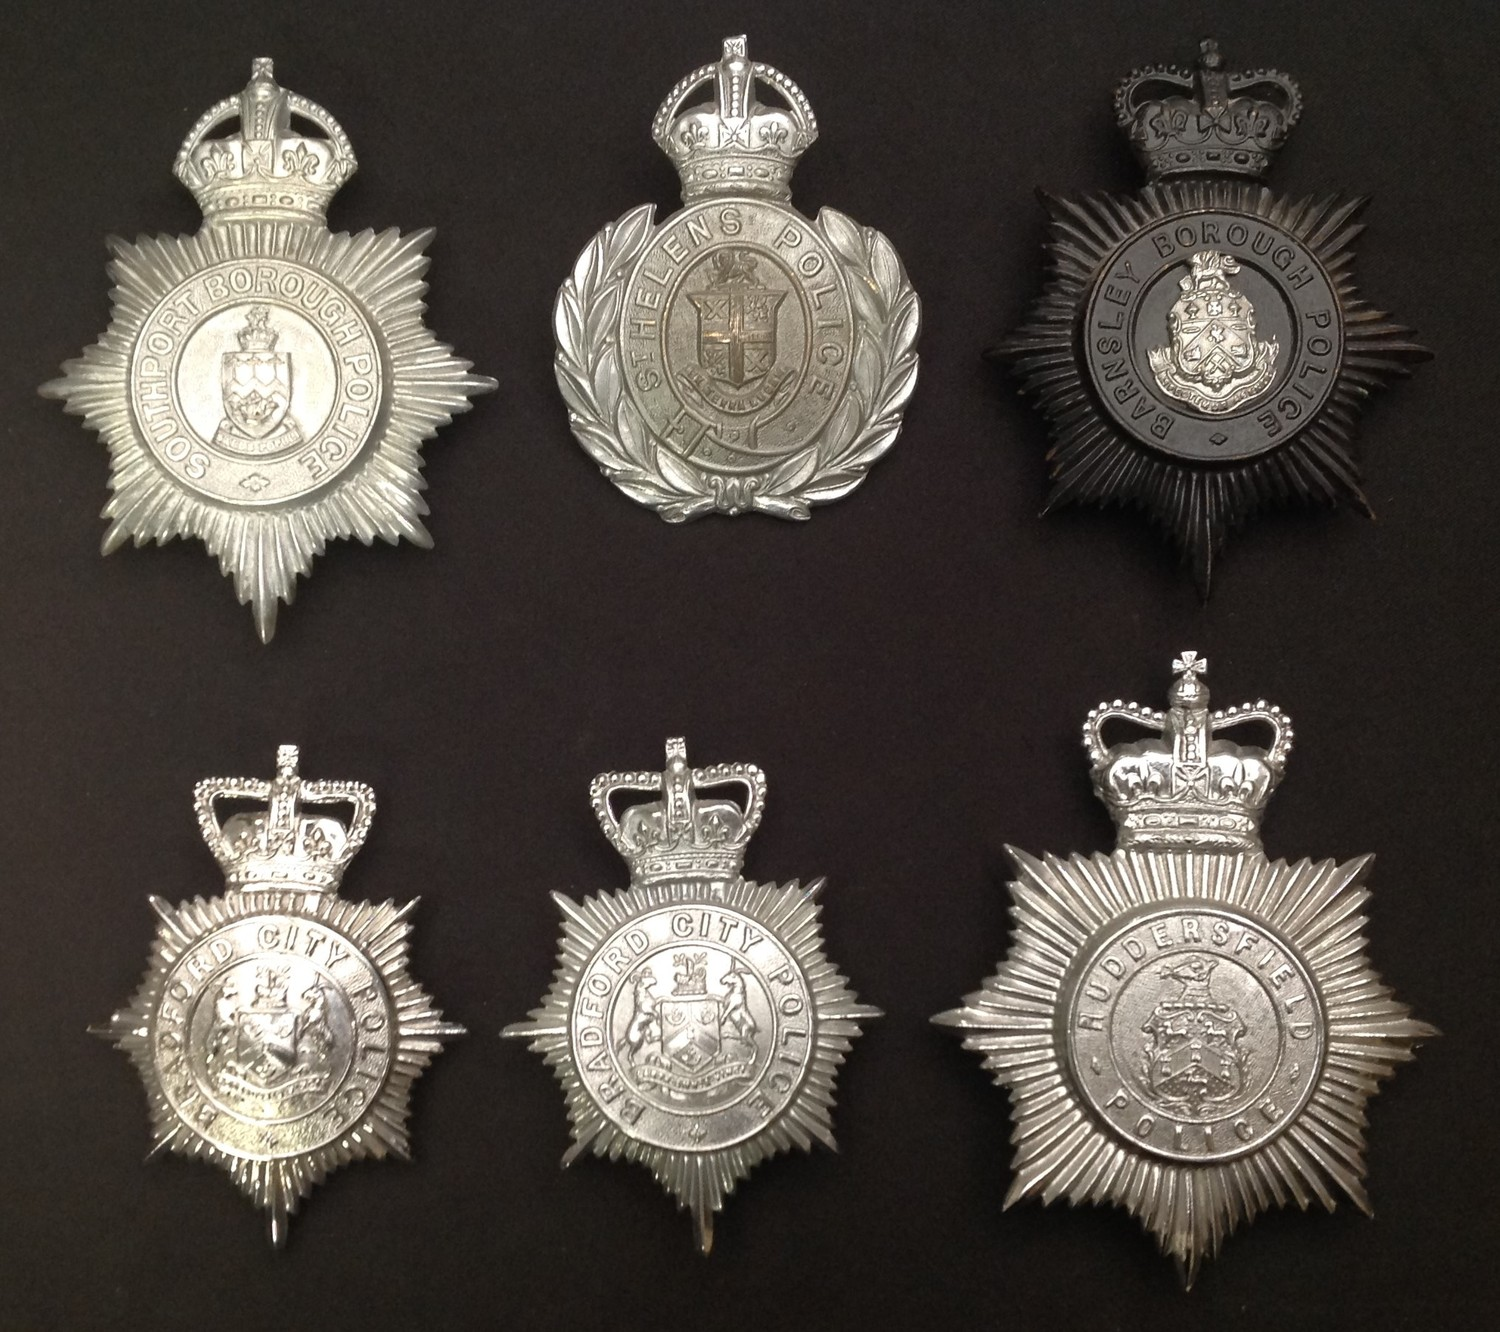 Kings Crown Southport Borough Police: Kings Crown St. Hellens Police: Queens Crown Barnsley